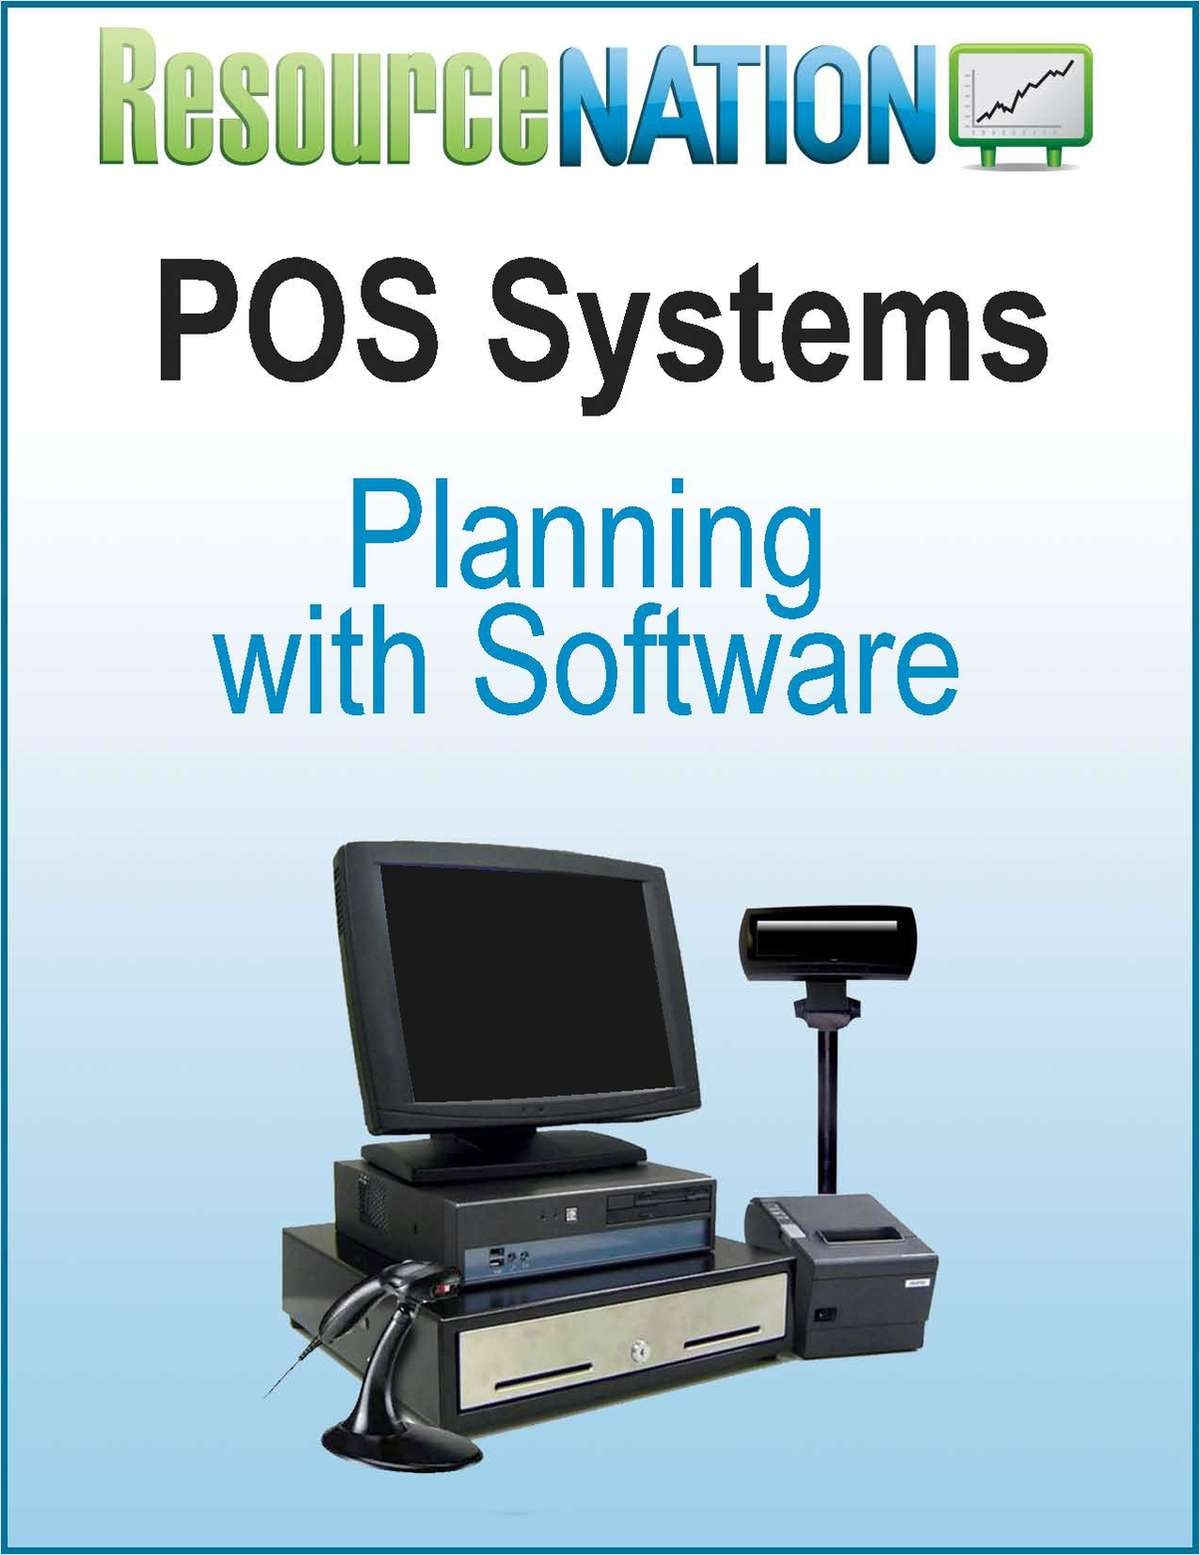 Finding a Low Cost Point Of Sale (POS) System for Your Business